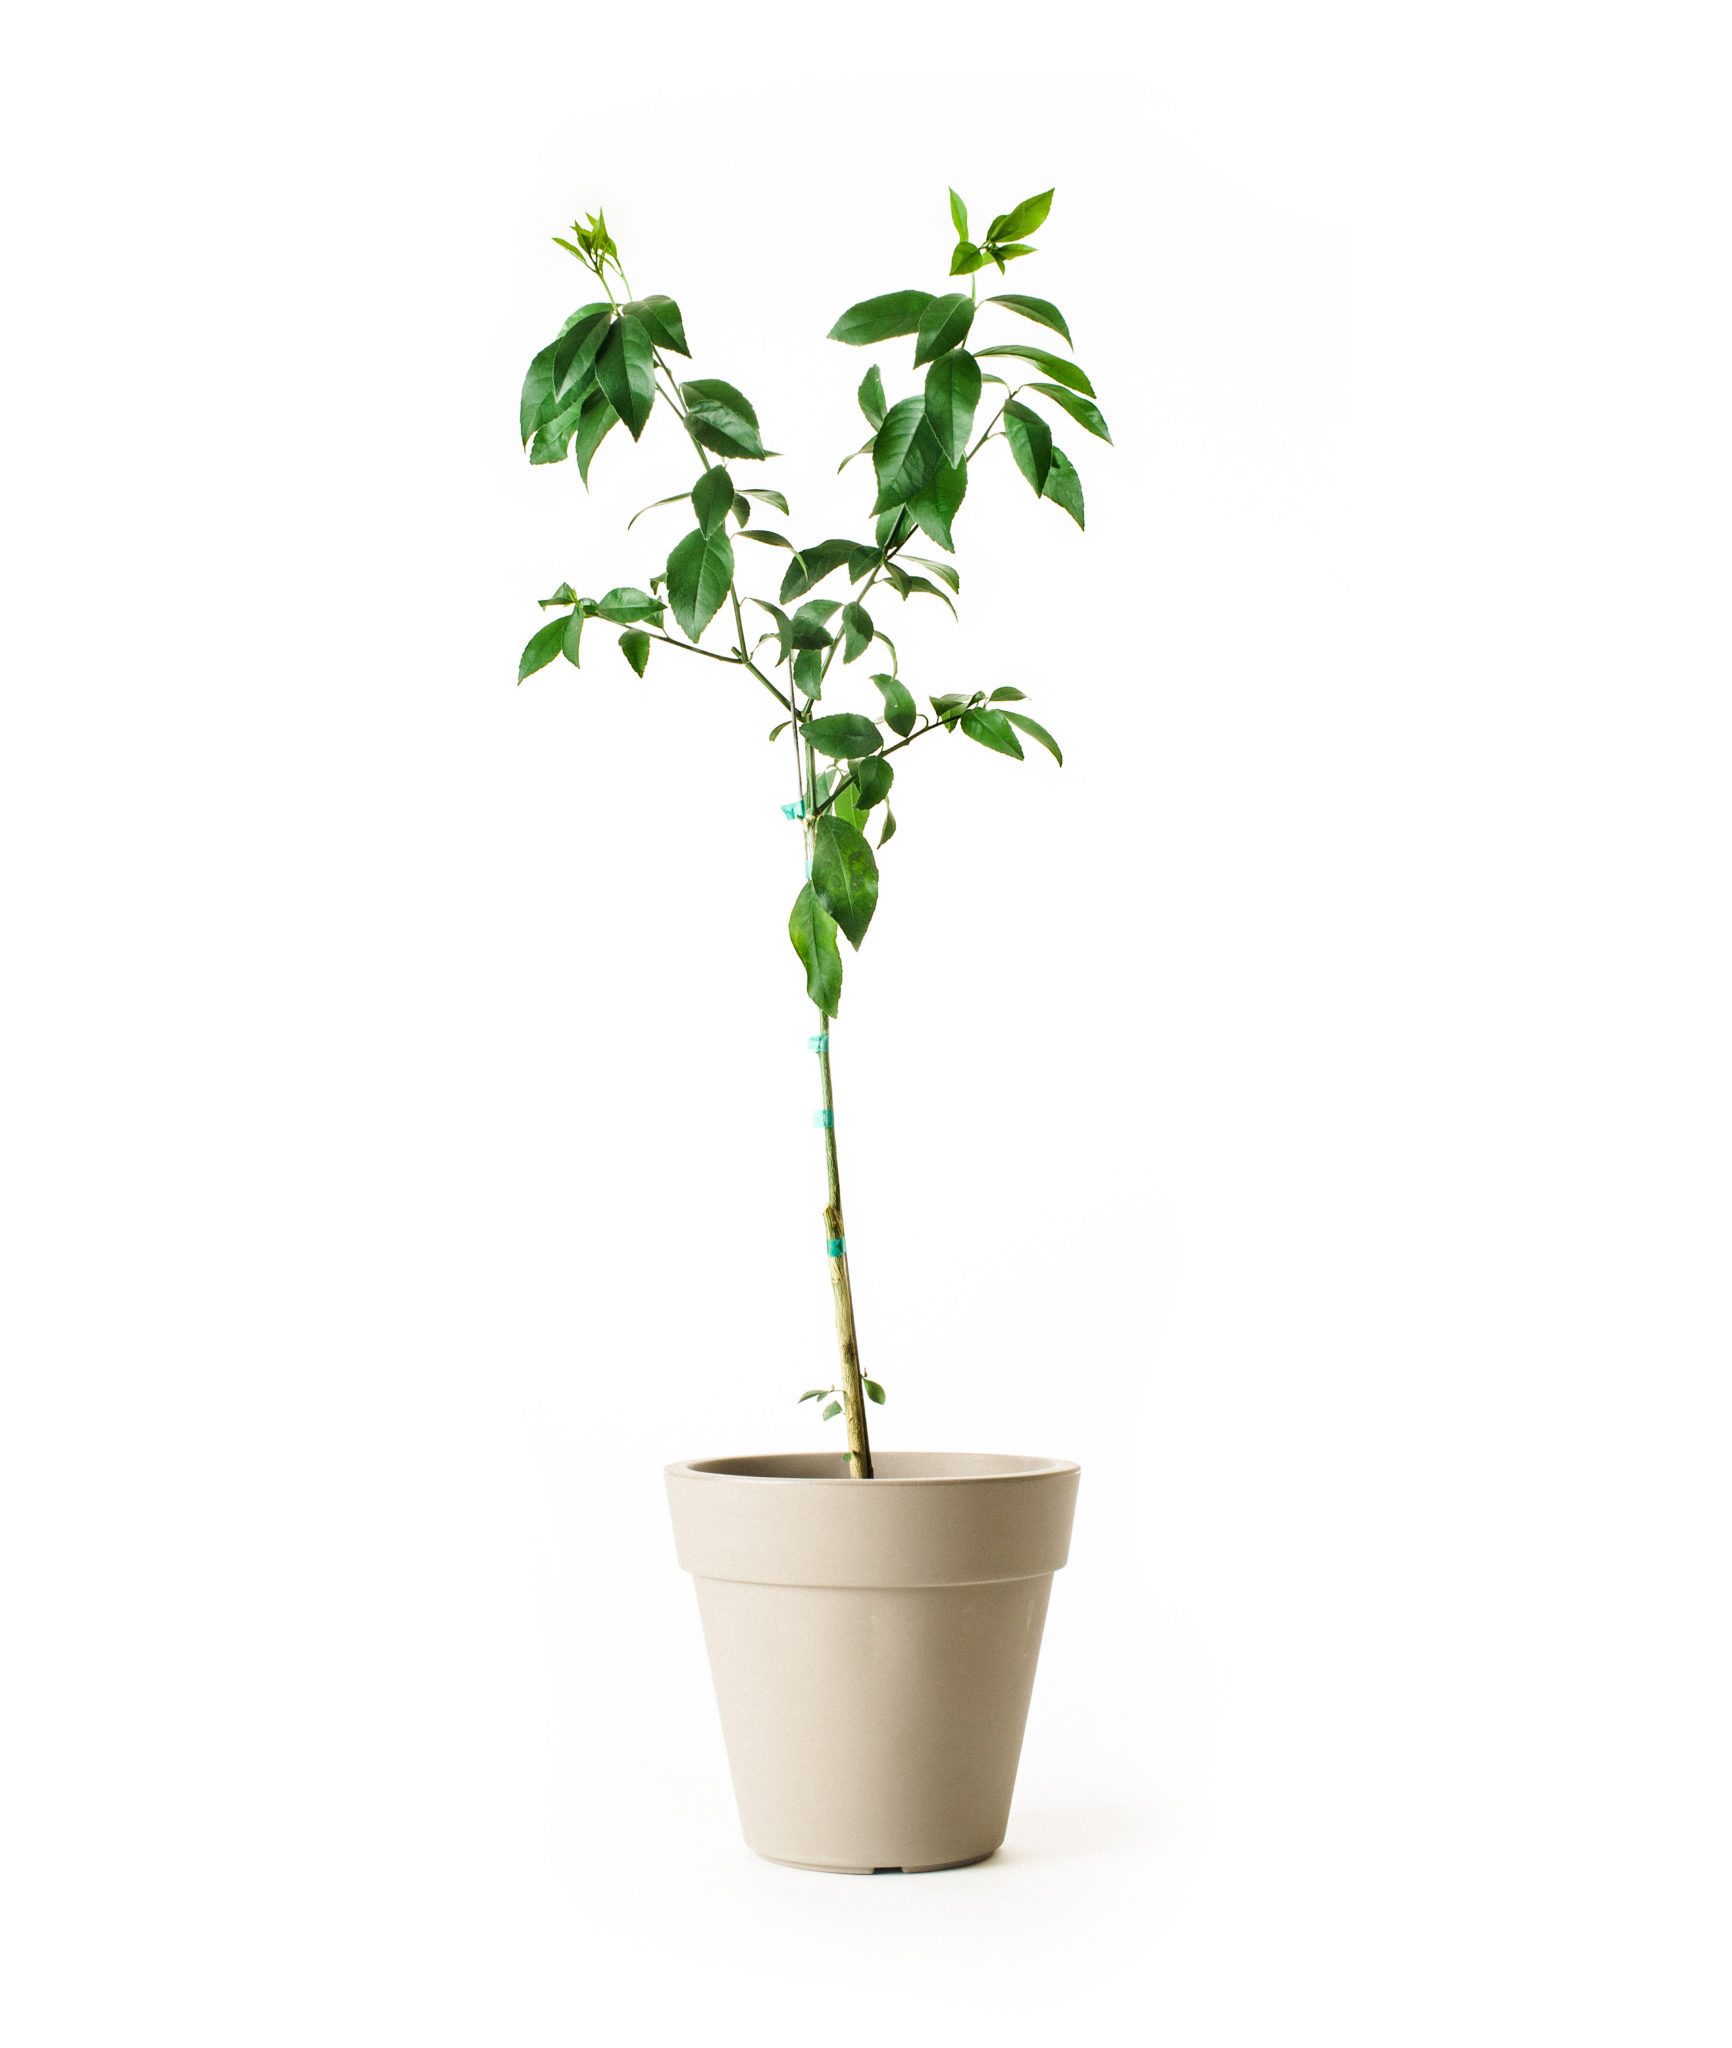 Improved Meyer Lemon Tree (Age: 1 Year, Height: 2 - 3 FT, Ship Method: Delivery)